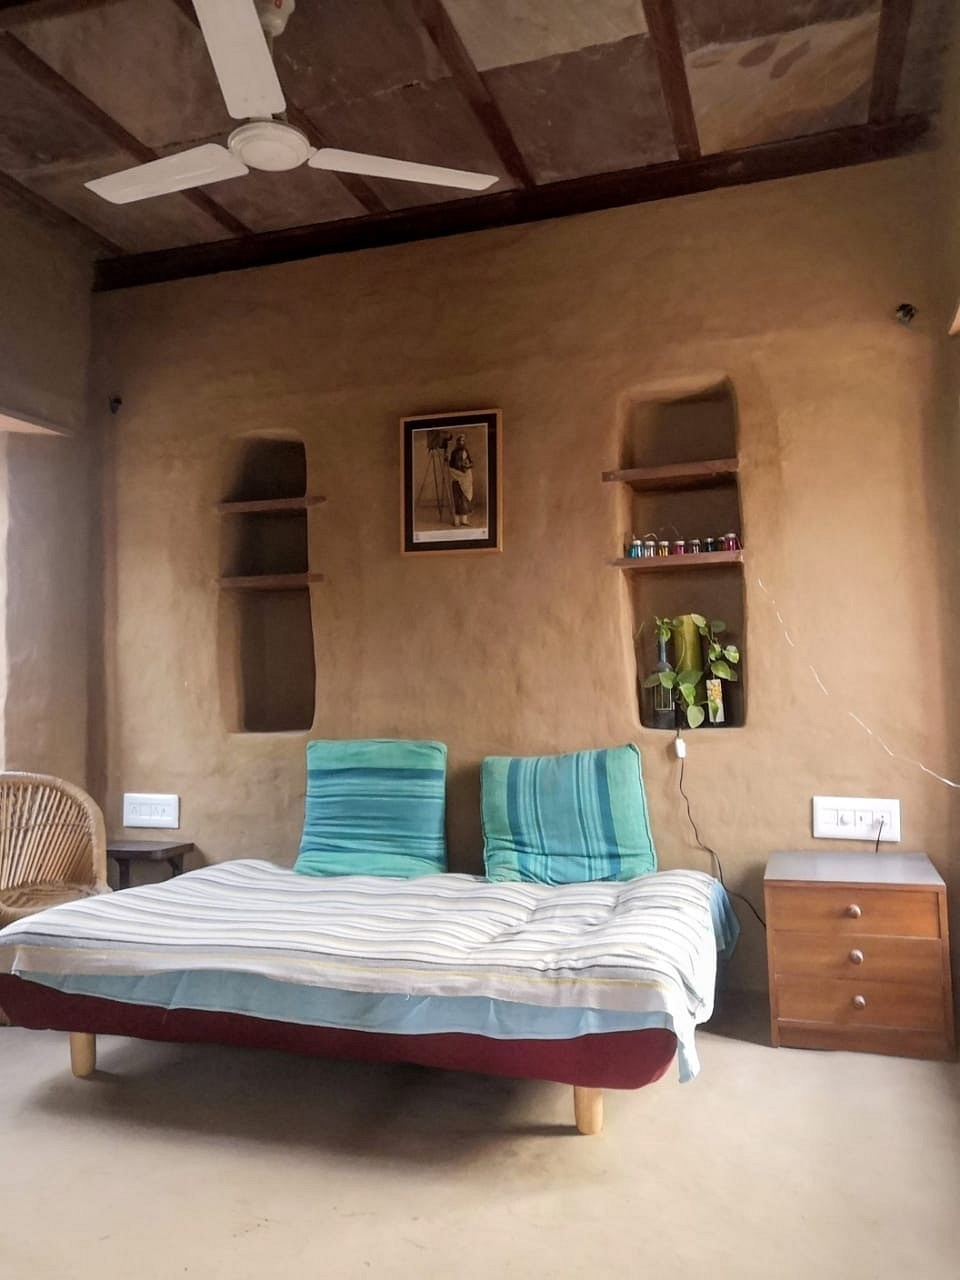 Eco-friendly house with mud-plastered walls